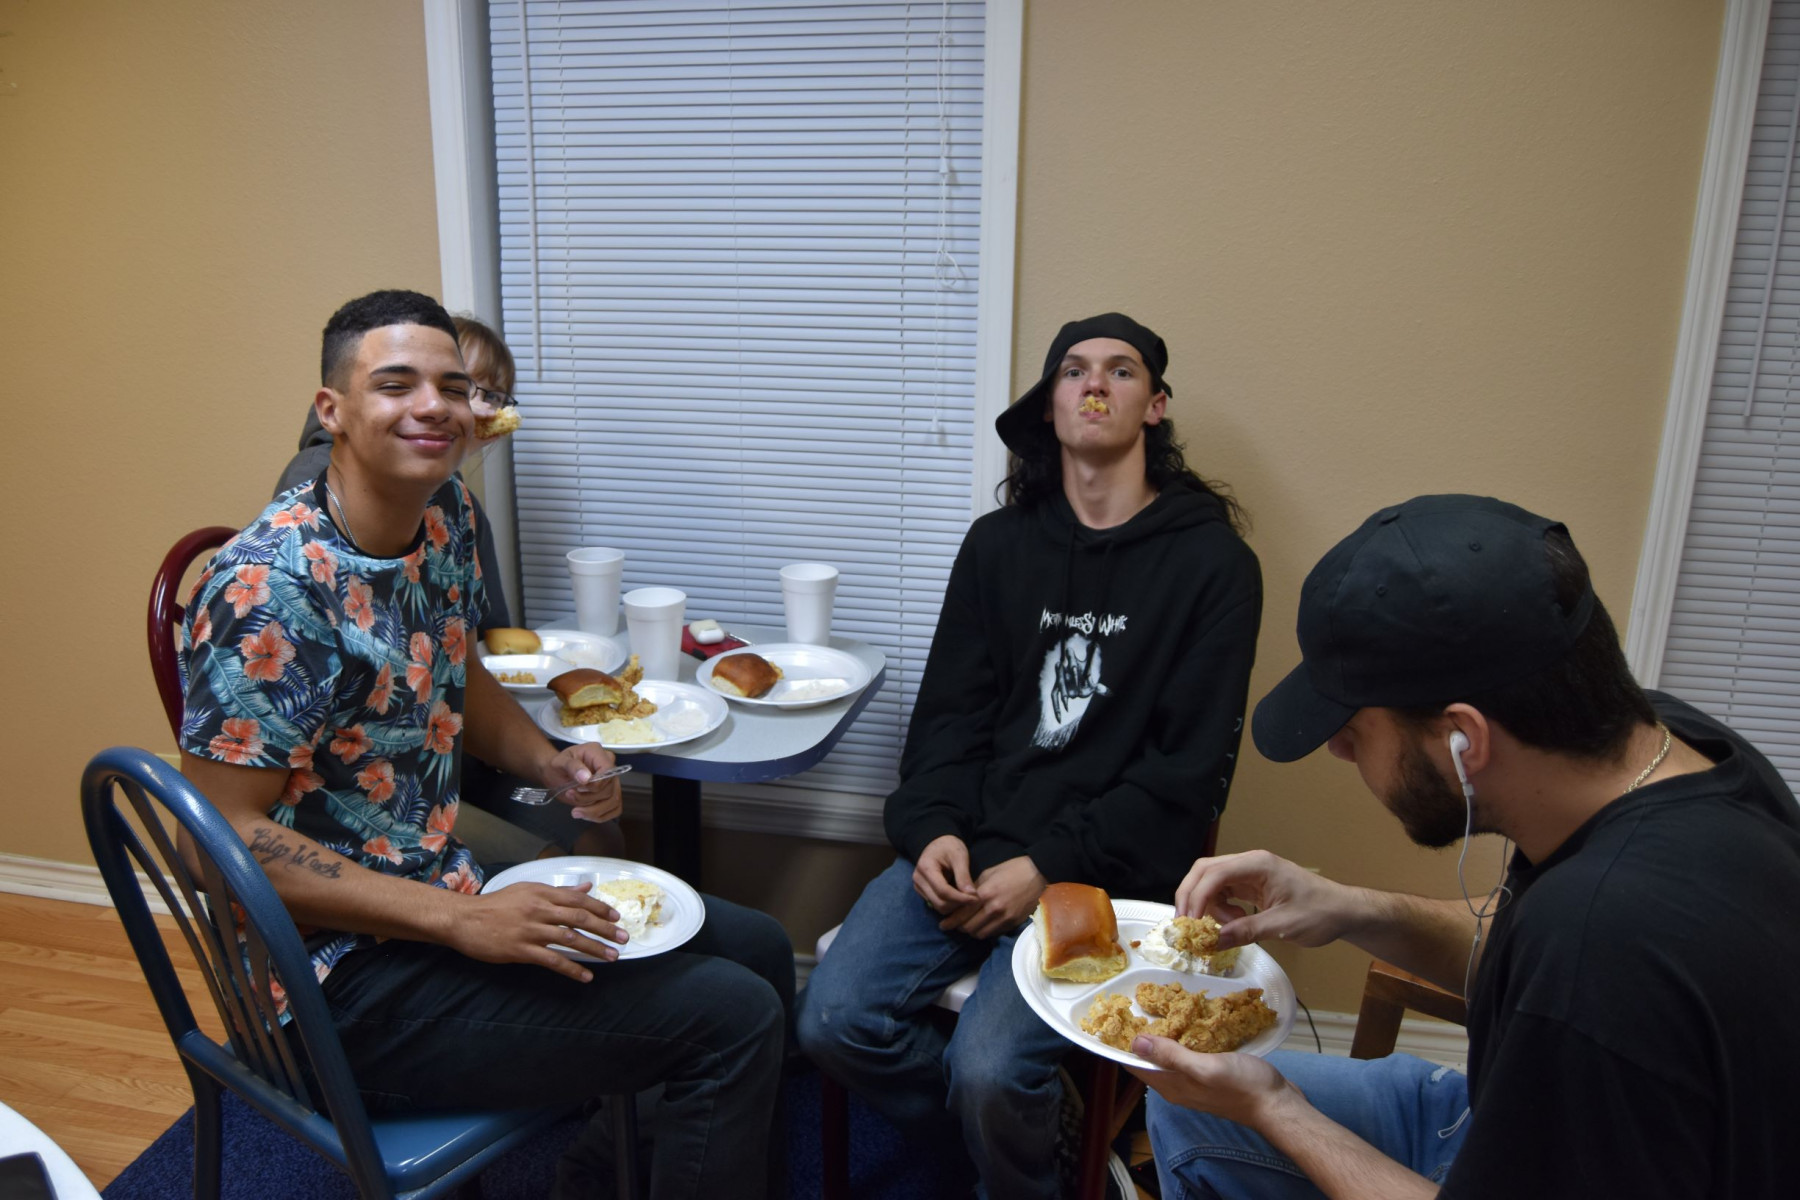 Youth Fellowship Meal and Bible Study